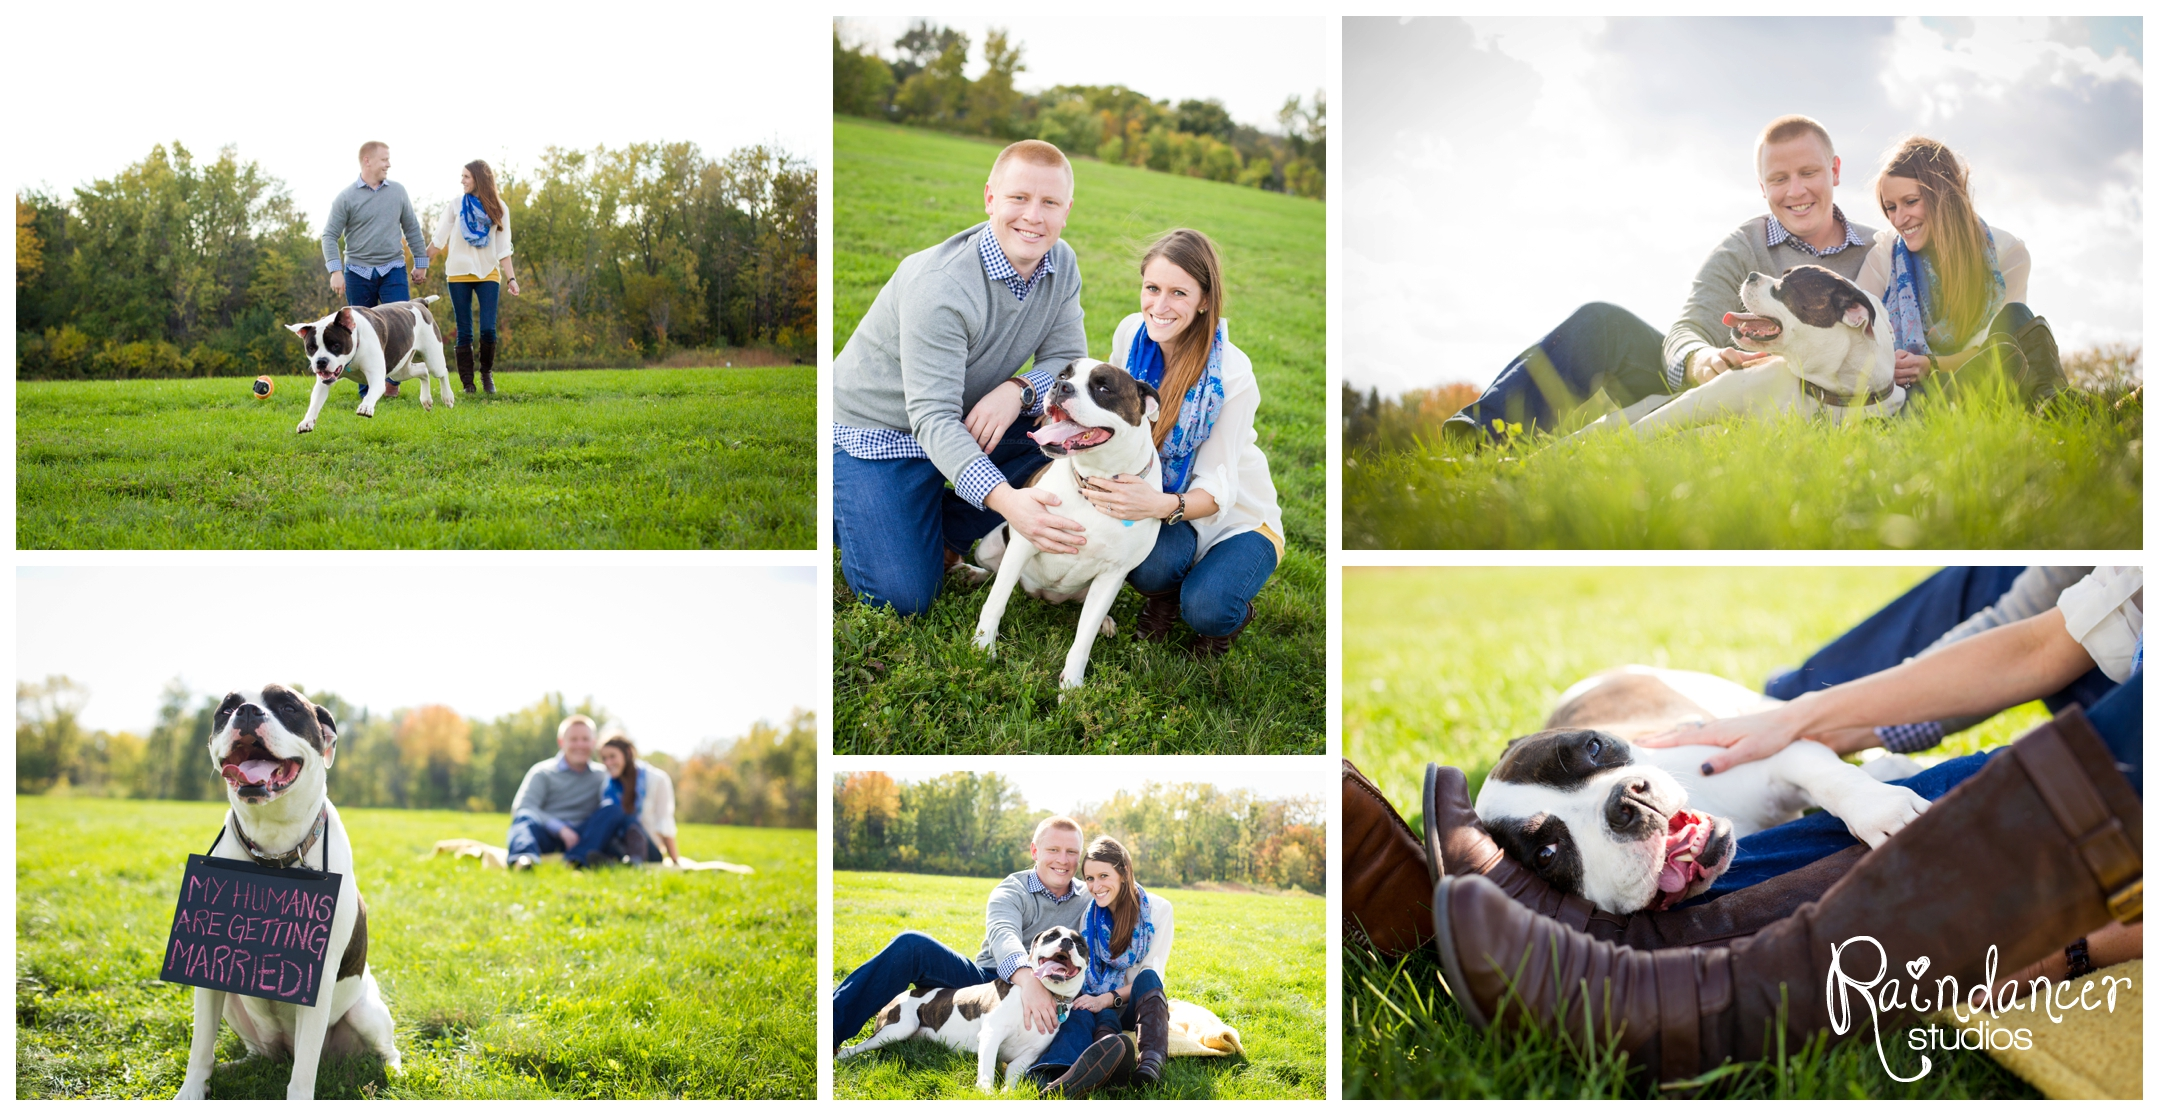 My Humans Are Getting Married!  {Indianapolis Engagement Photographer}